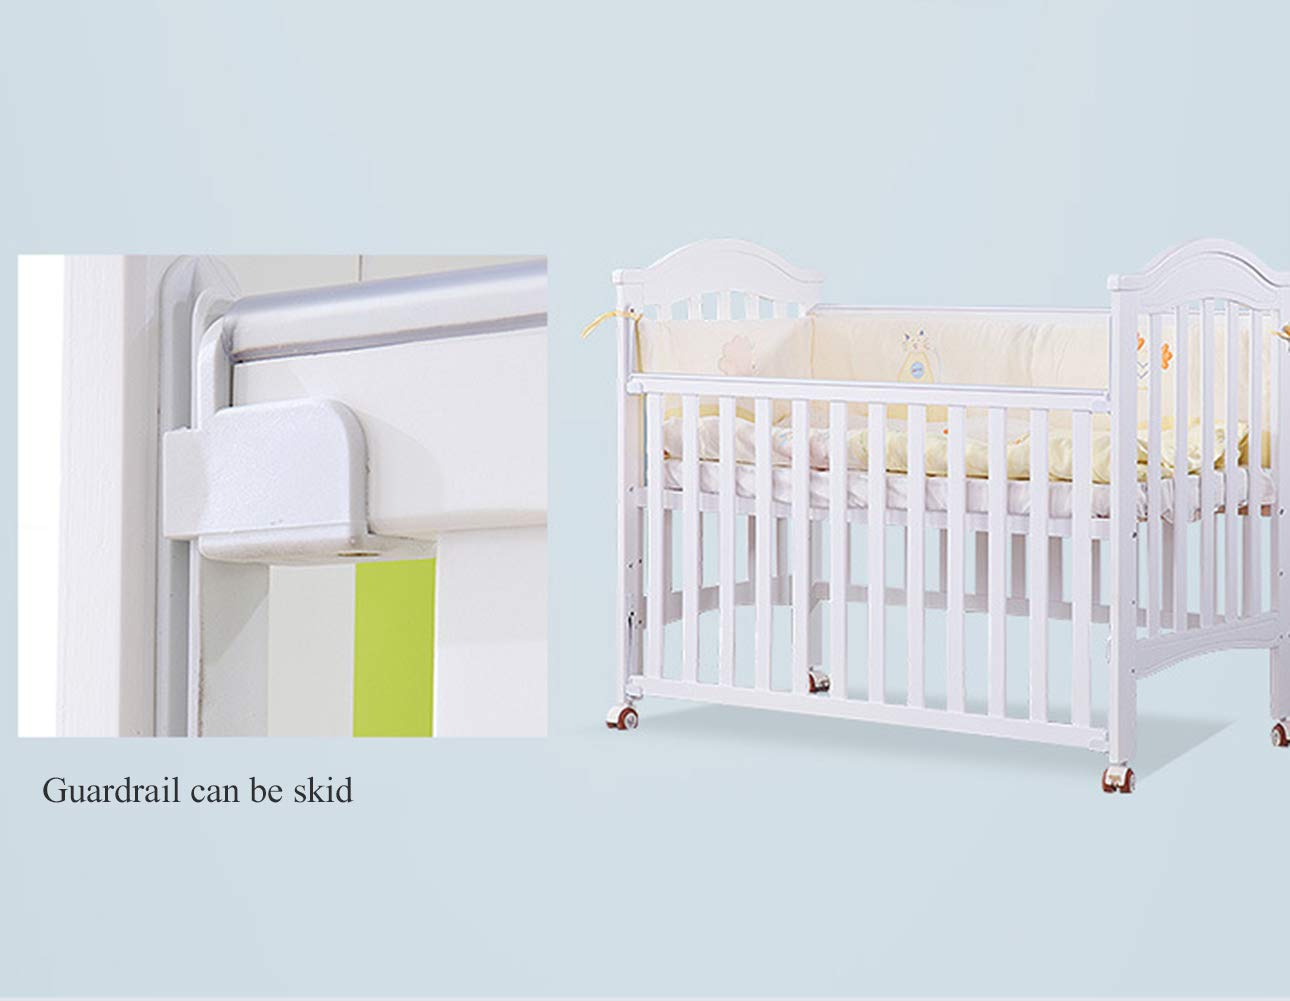 XUNMAIFLB Removable Solid Wood Baby Cot Bed, Multifunctional, Baby Bed/children's Bed/Game Bed with Roller (inner Diameter: 1200 * 600mm) Safety XUNMAIFLB Can be spliced with the big bed, convenient for the mother to take care of the baby's full water bed board, real material, no blister, no insects, tight structure, texture and tough and delicate. Rugged and durable: the wood is durable, oil-free, non-discoloring, and does not crack, increasing the life of the bed. Strong load-bearing solid wood bed: widened thick row skeleton + moon boat coconut palm mattress static load capacity 50kg. 5